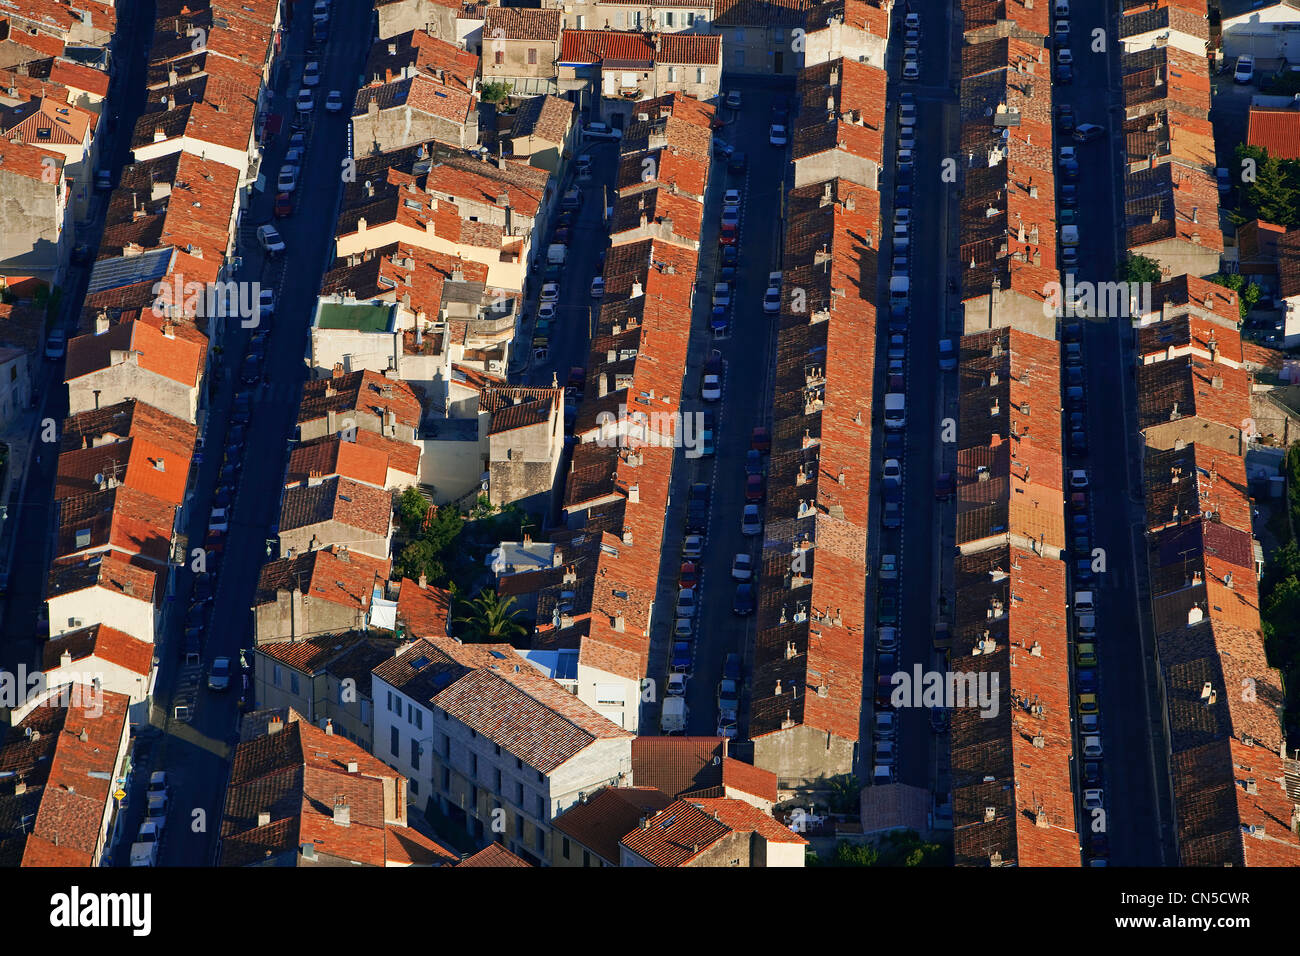 France, Bouches du Rhone, Marseille, 9th district, Mazargues (aerial view) - Stock Image